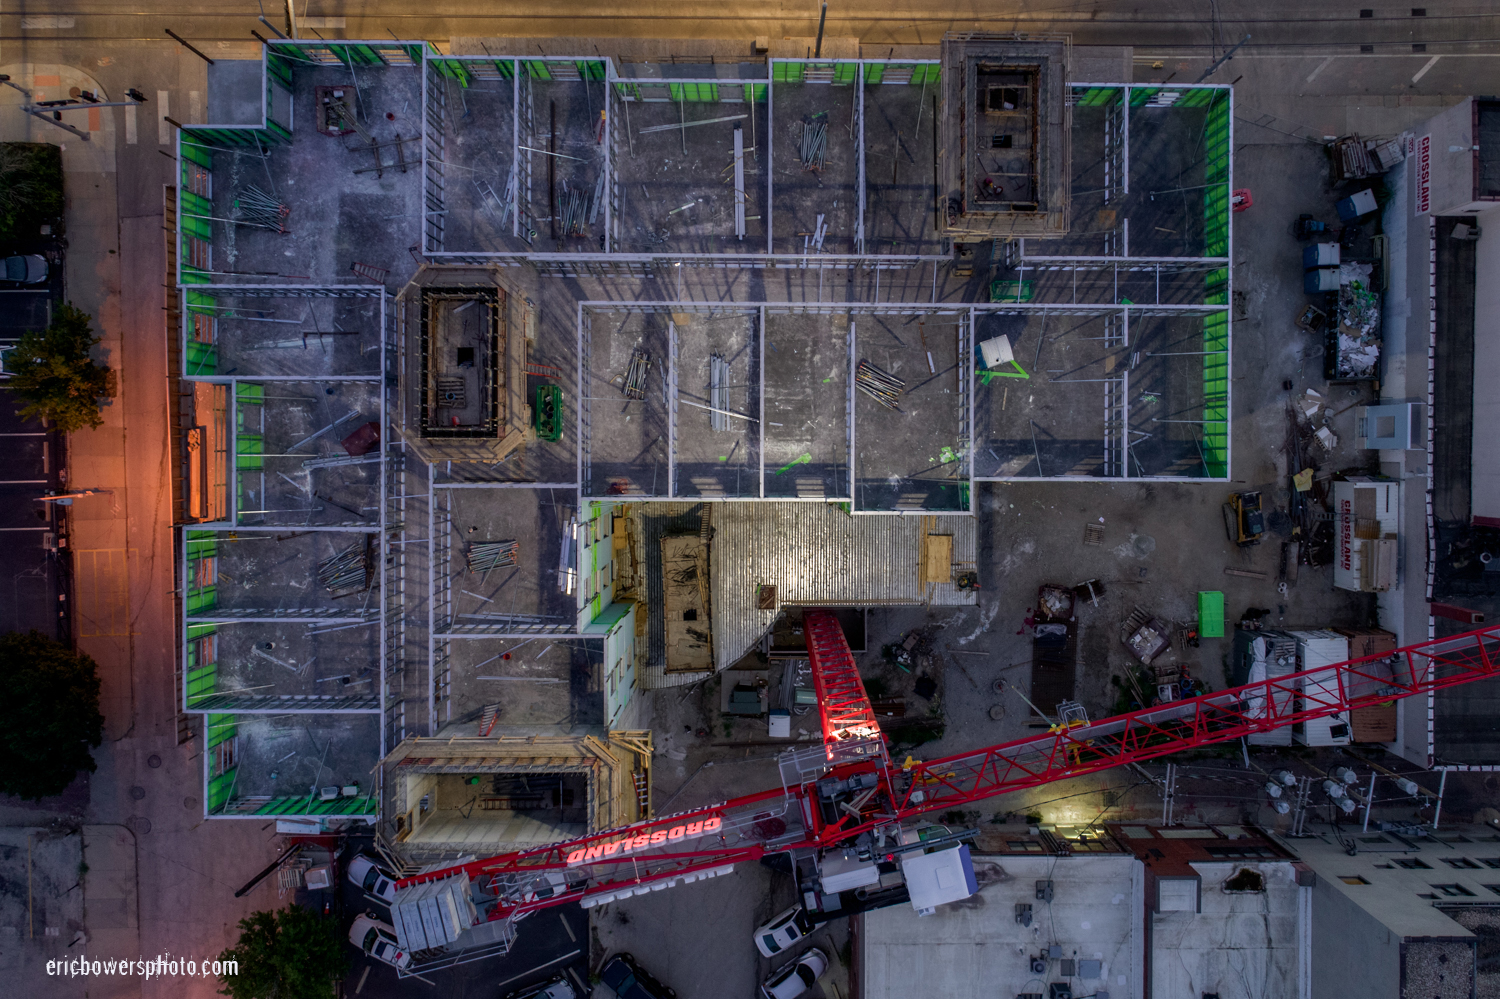 Flying Camera Above Kansas City Construction Site OR A Flying Camera Above Central Bank Quantitative Easing; A new-fangled Hampton Inn at approx. 16th and Main, Kansas City, Missouri; post foundational yet pre-roofing. Summer 2018.